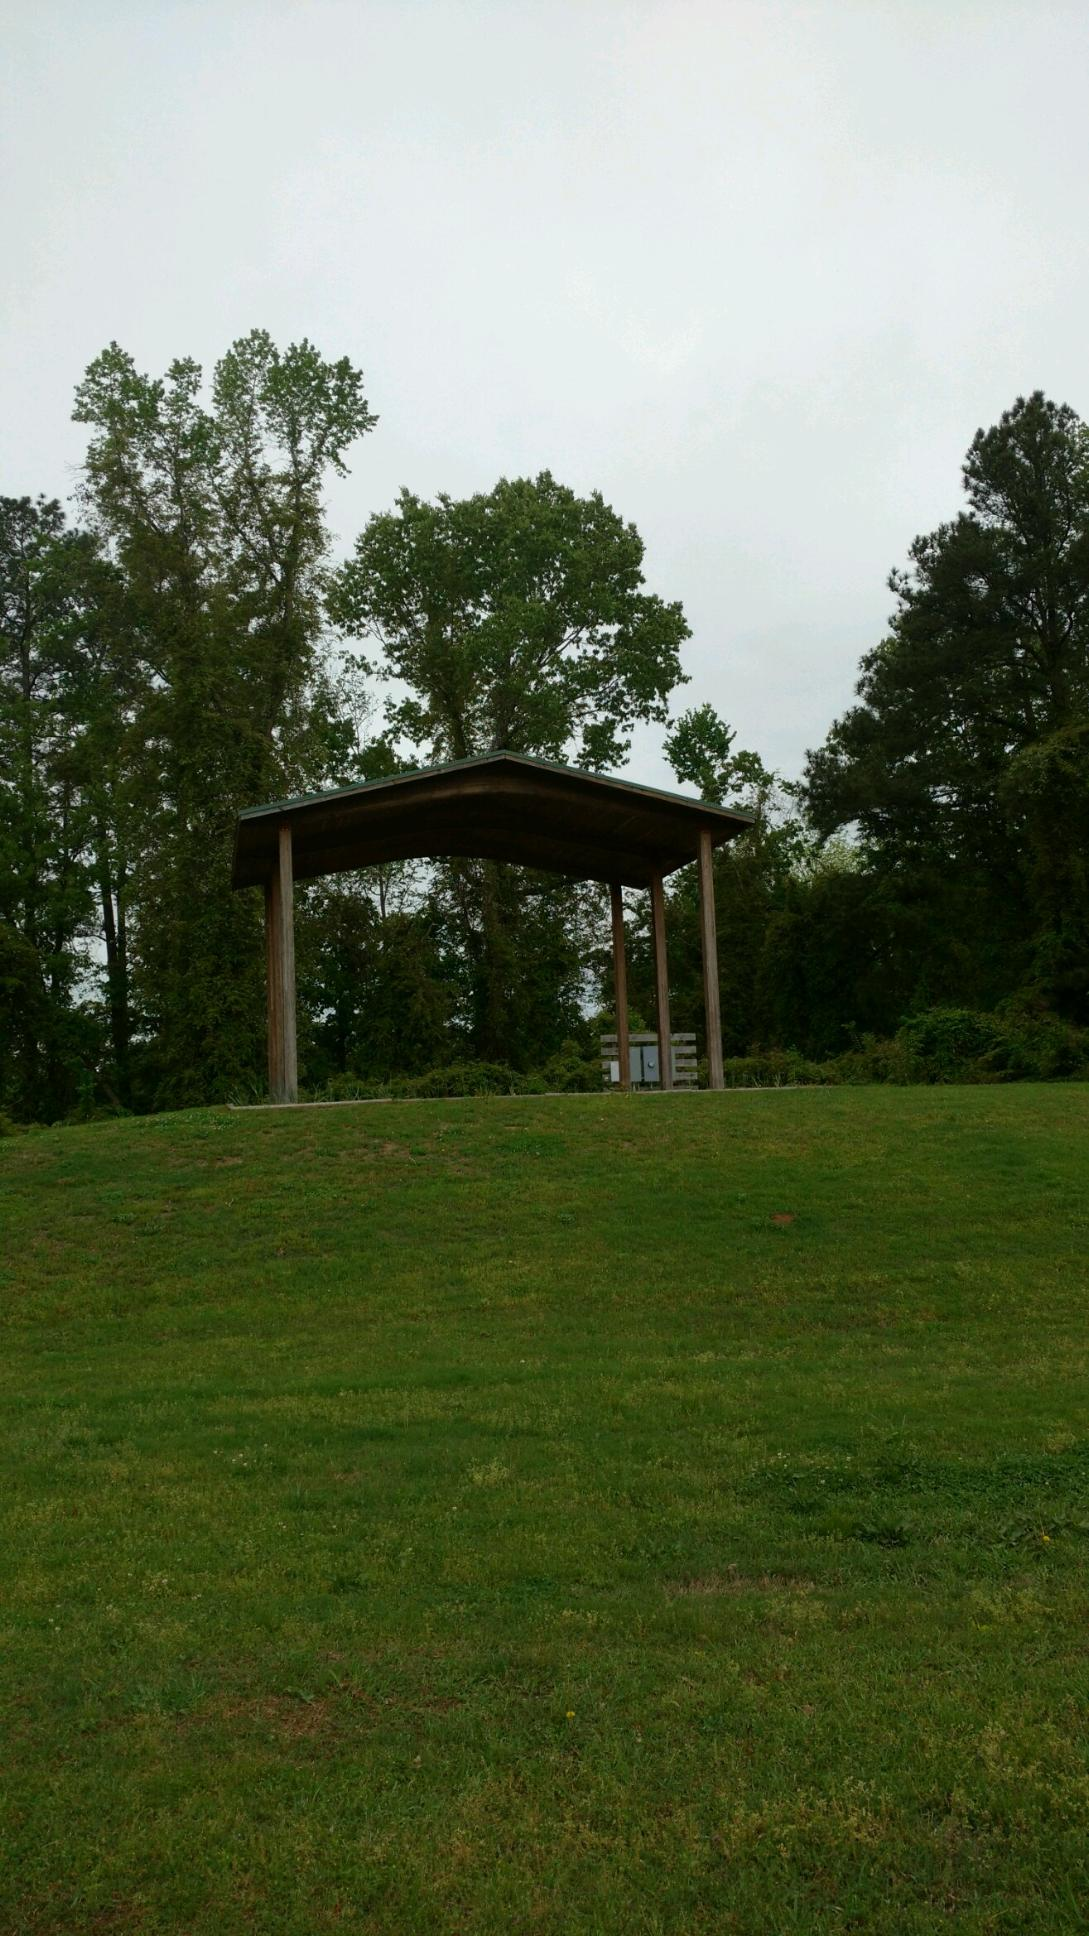 Amphitheater at Stoney Creek Environmental Park